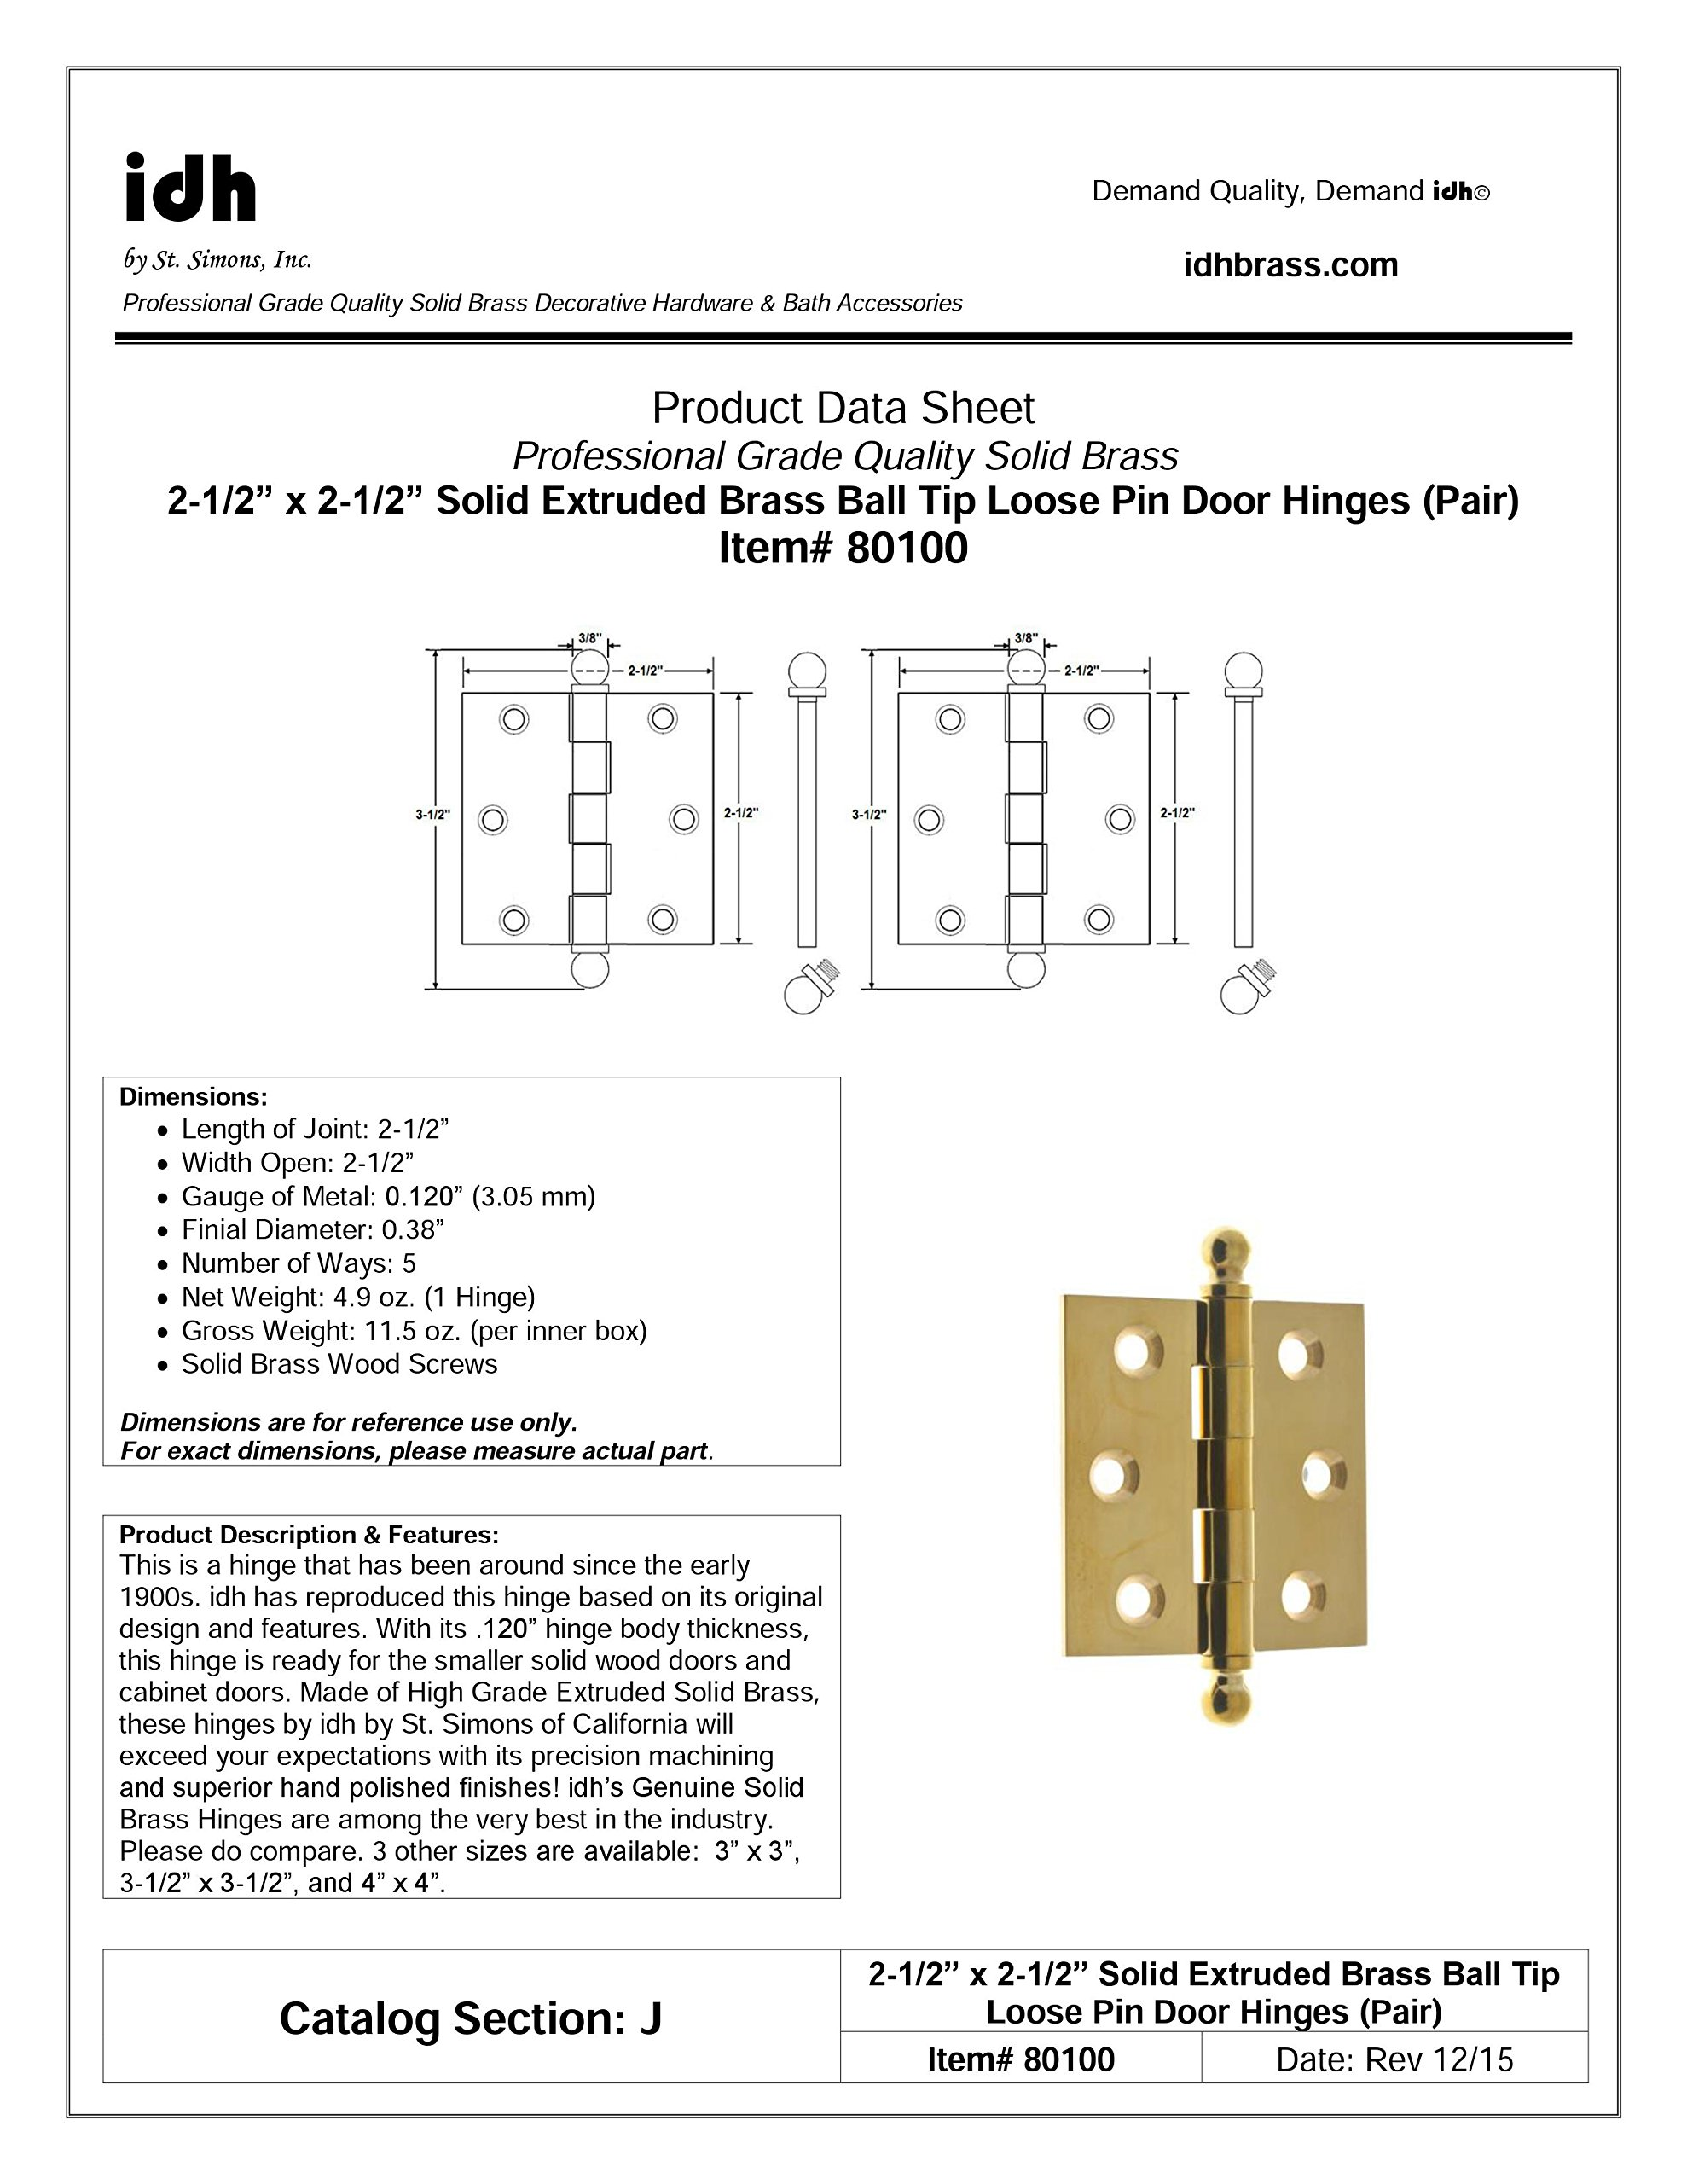 Professional Grade Quality Genuine Solid Brass 2-1/2'' x 2-1/2'' Loose Pin Hinges (Pair) by idh (Polished Brass)